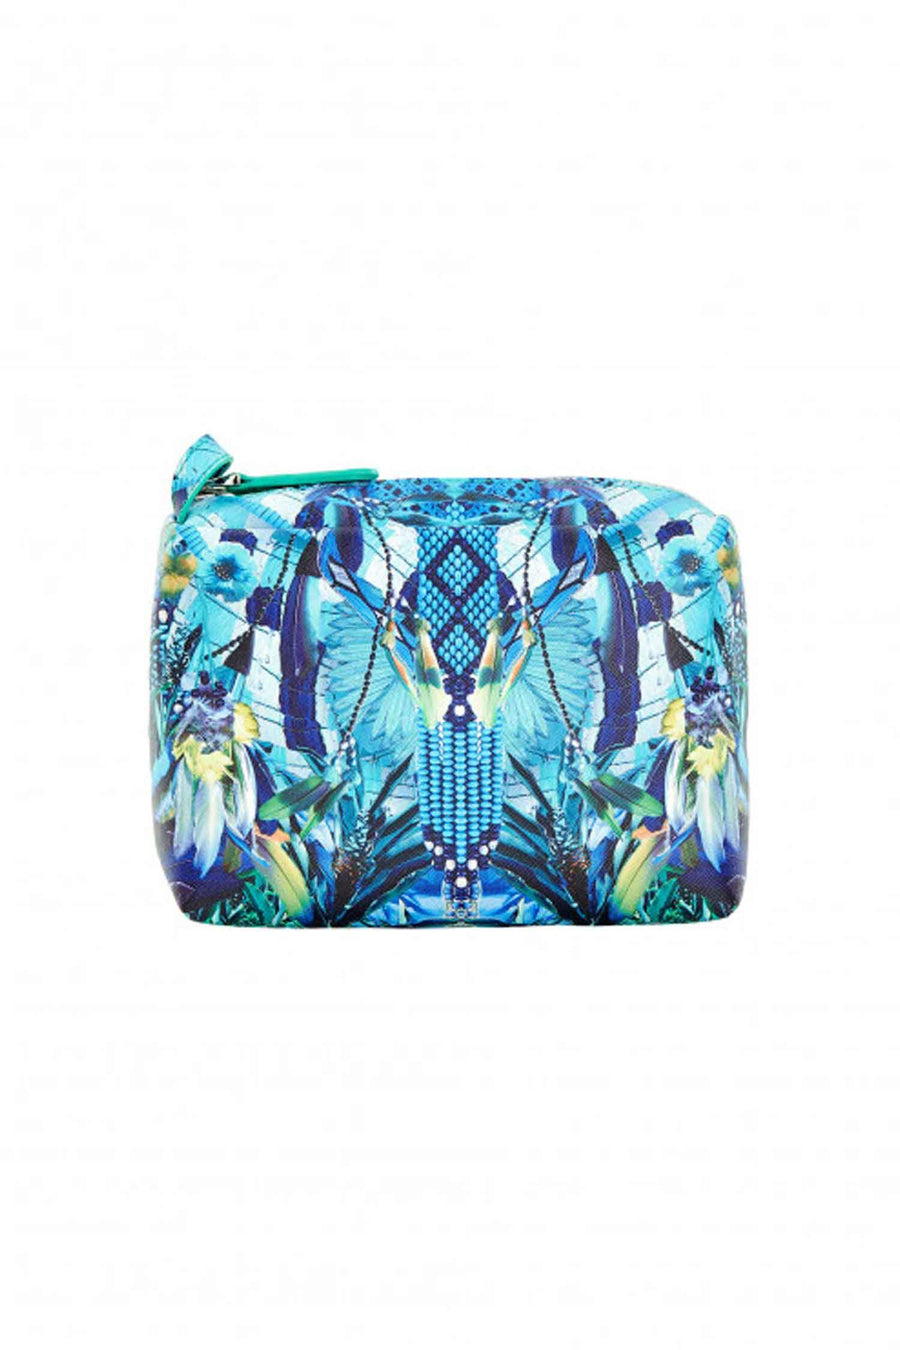 Small Makeup Bag in Amazon Azure